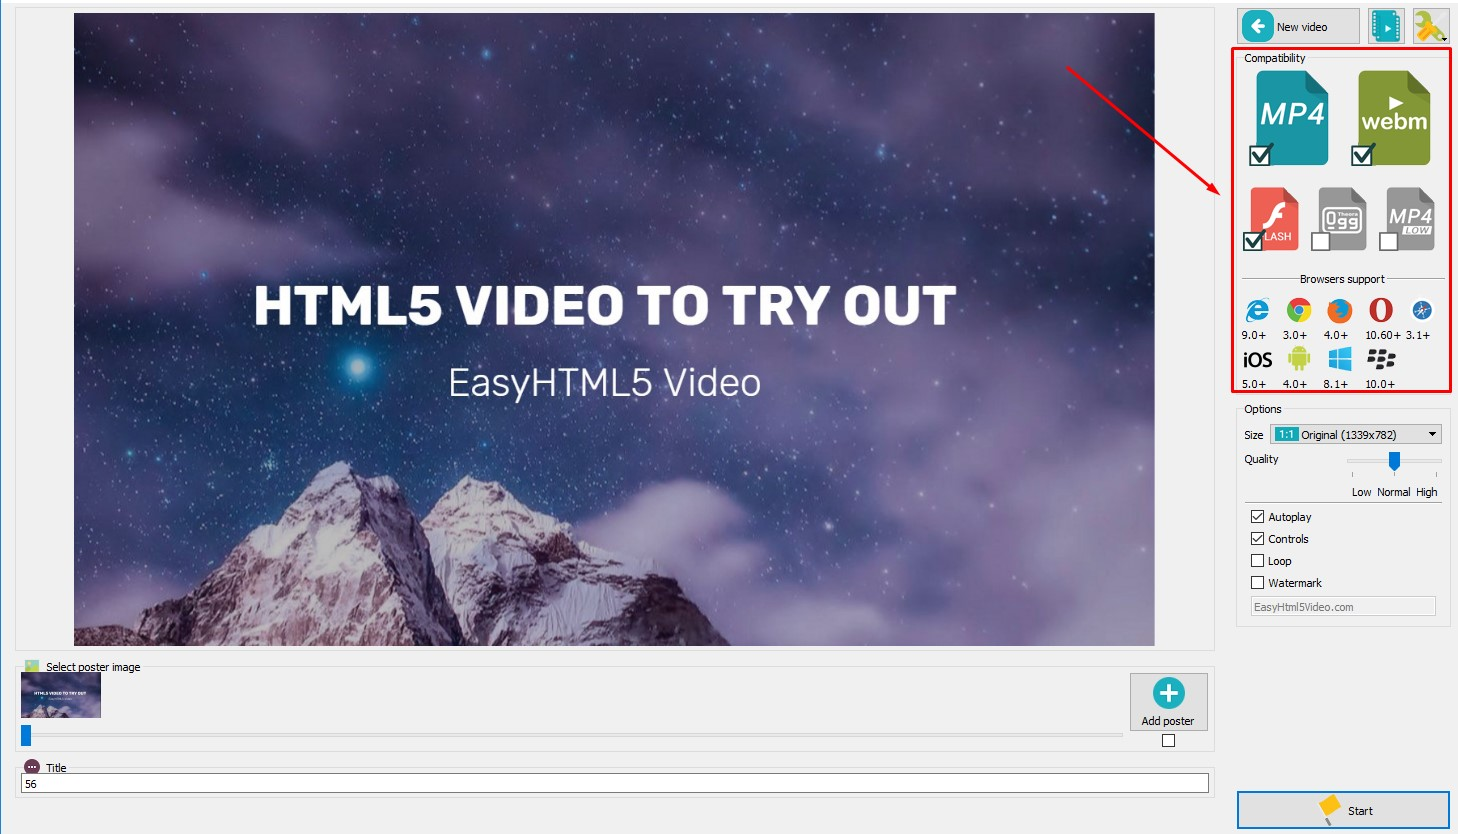 html5 video file not found